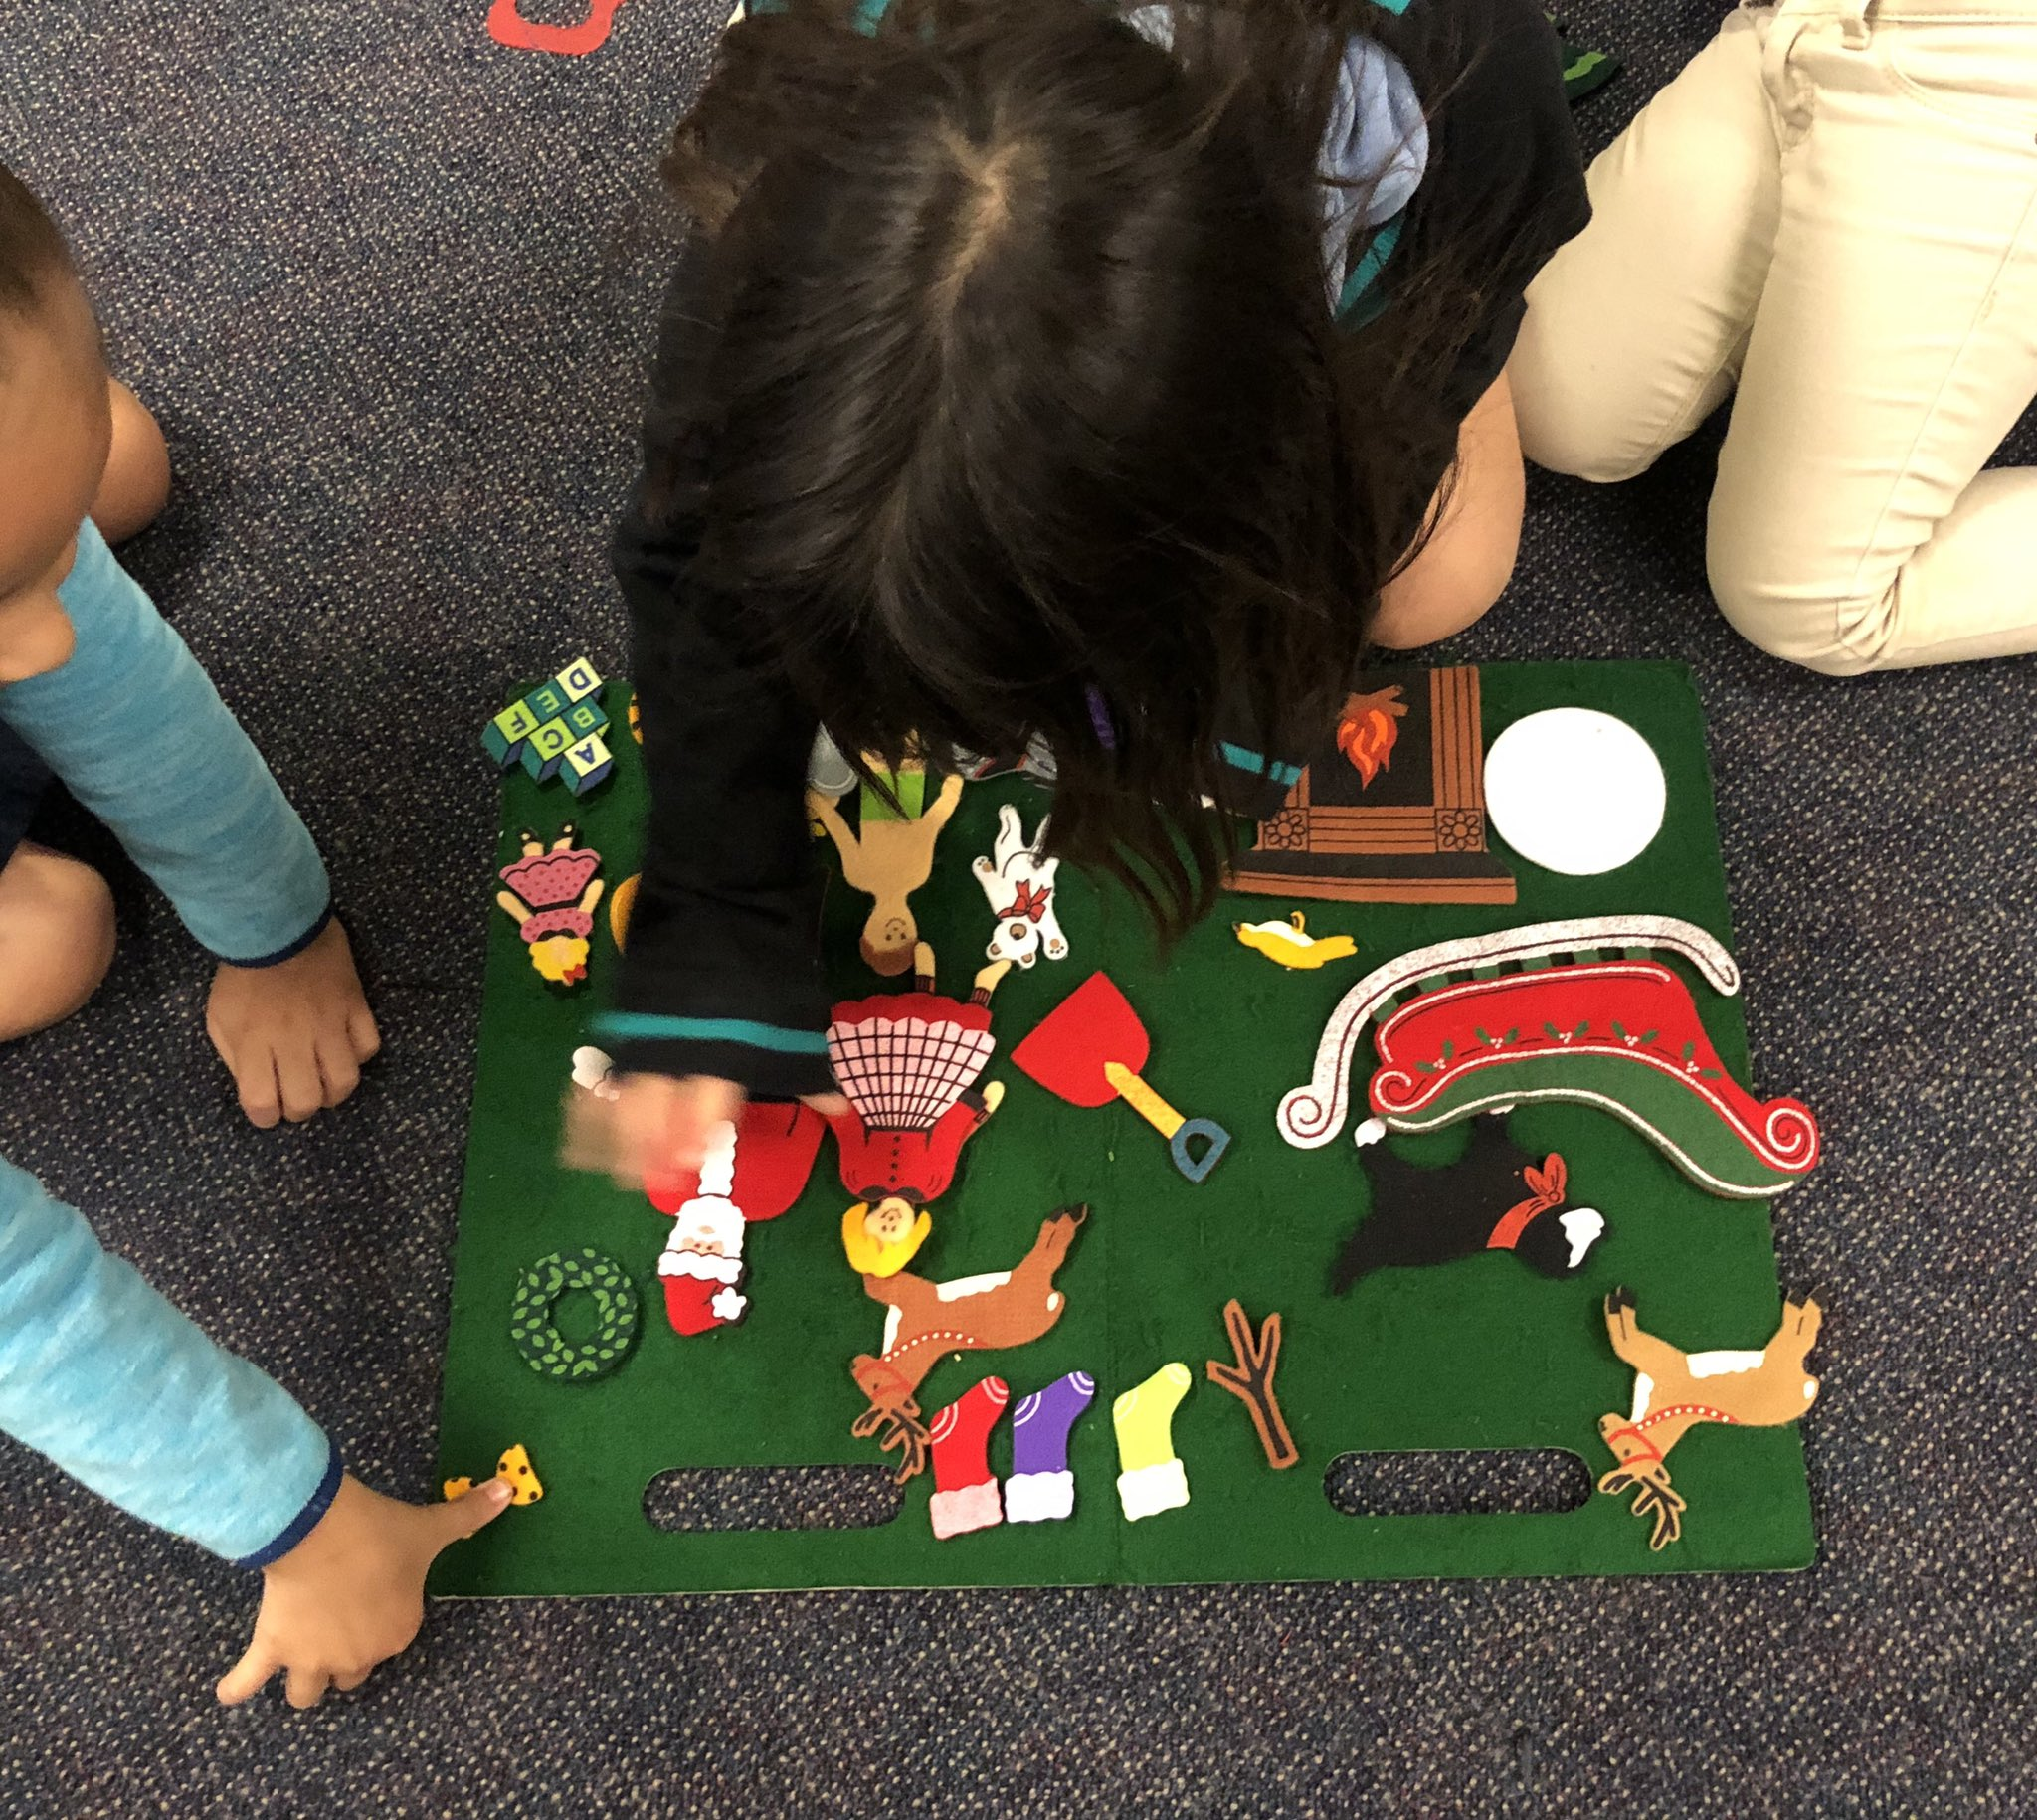 """Andrea Garcia Play andrea garcia on twitter: """"holiday exploration and #play"""